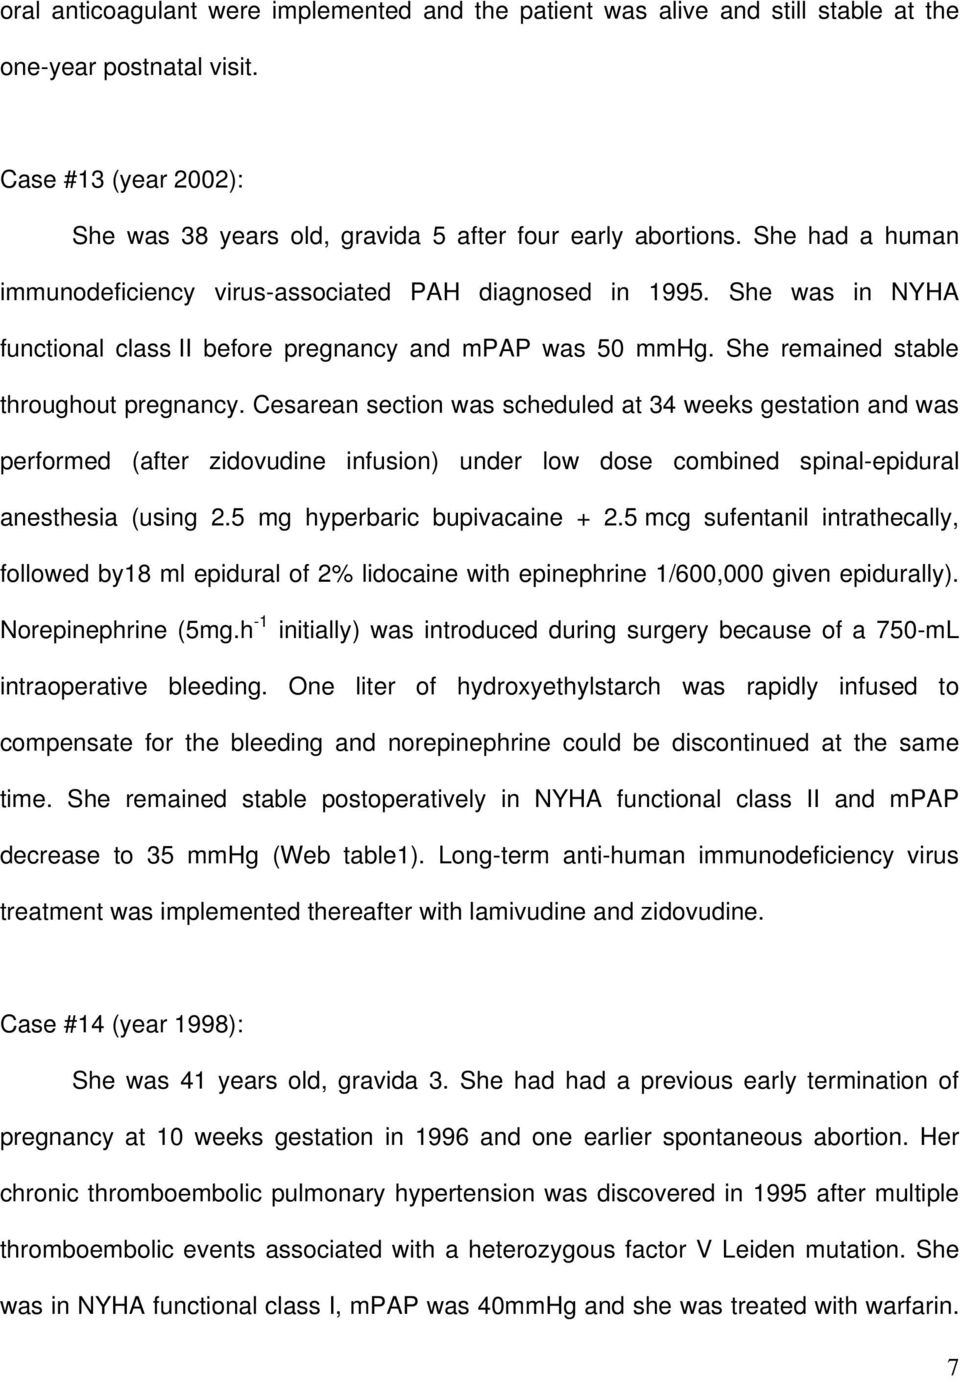 Cesarean section was scheduled at 34 weeks gestation and was performed (after zidovudine infusion) under low dose combined spinal-epidural anesthesia (using 2.5 mg hyperbaric bupivacaine + 2.